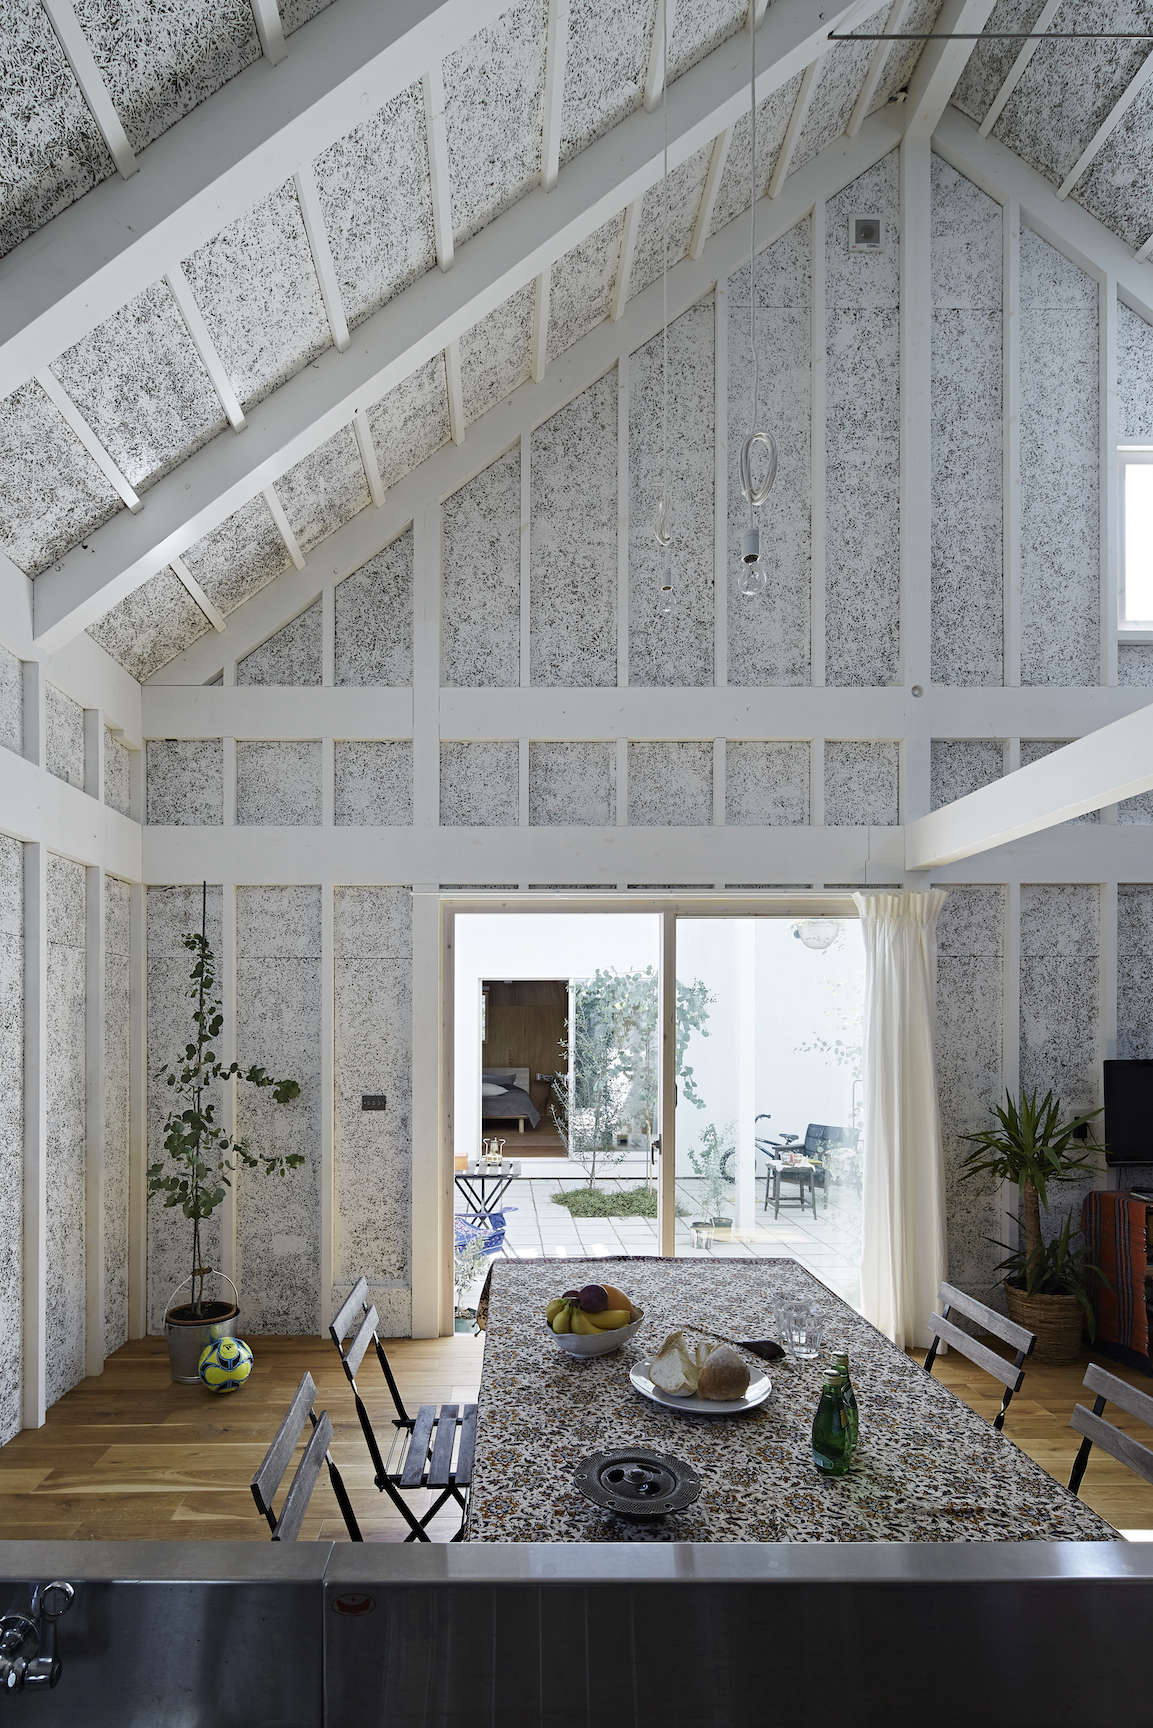 sabi, a surfers' house in chiba, japan, designed by no. 555 architects. the tex 12